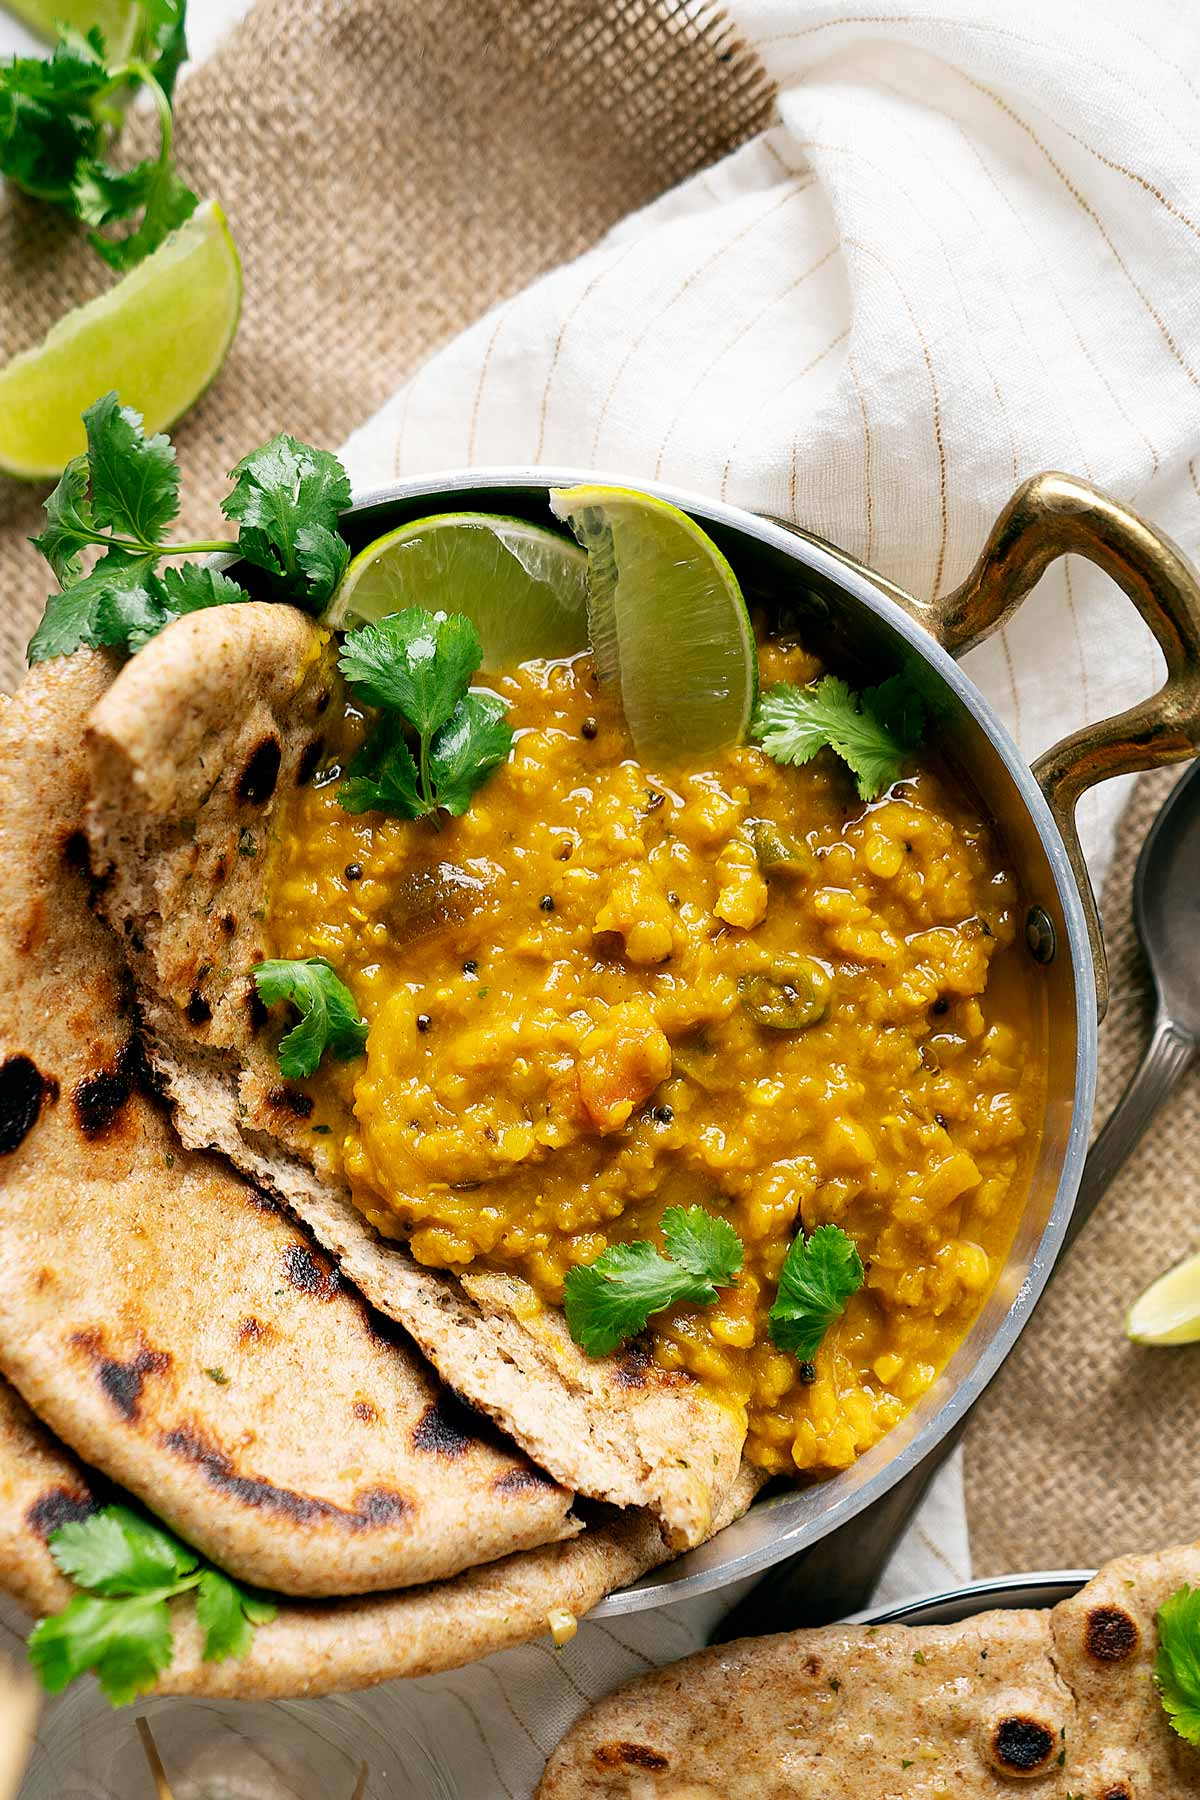 Lentil turmeric curry in a bowl view from top